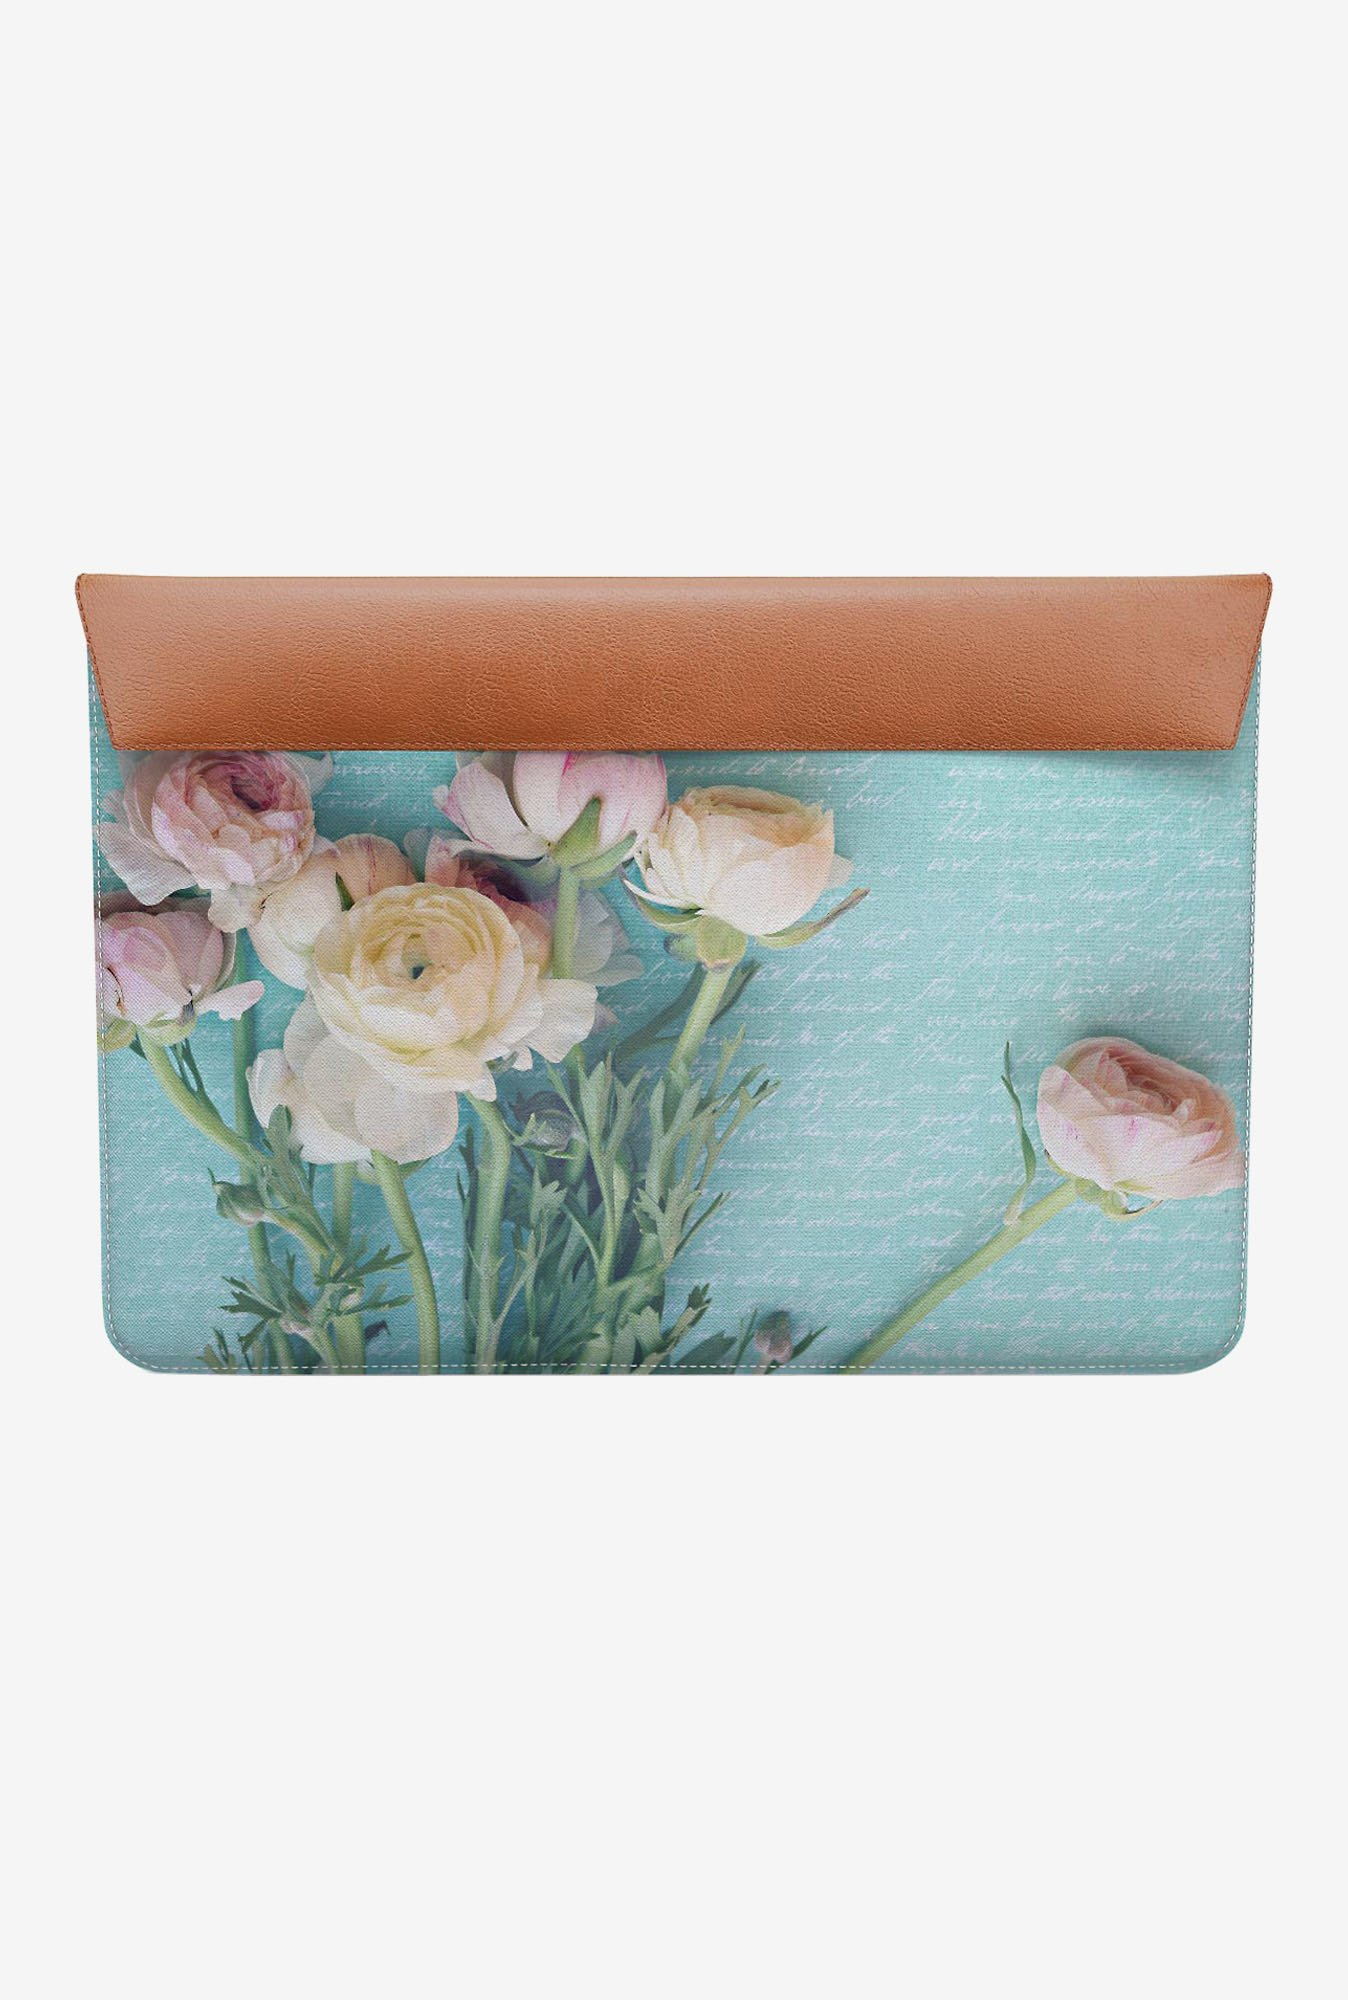 DailyObjects Xoxo MacBook 12 Envelope Sleeve